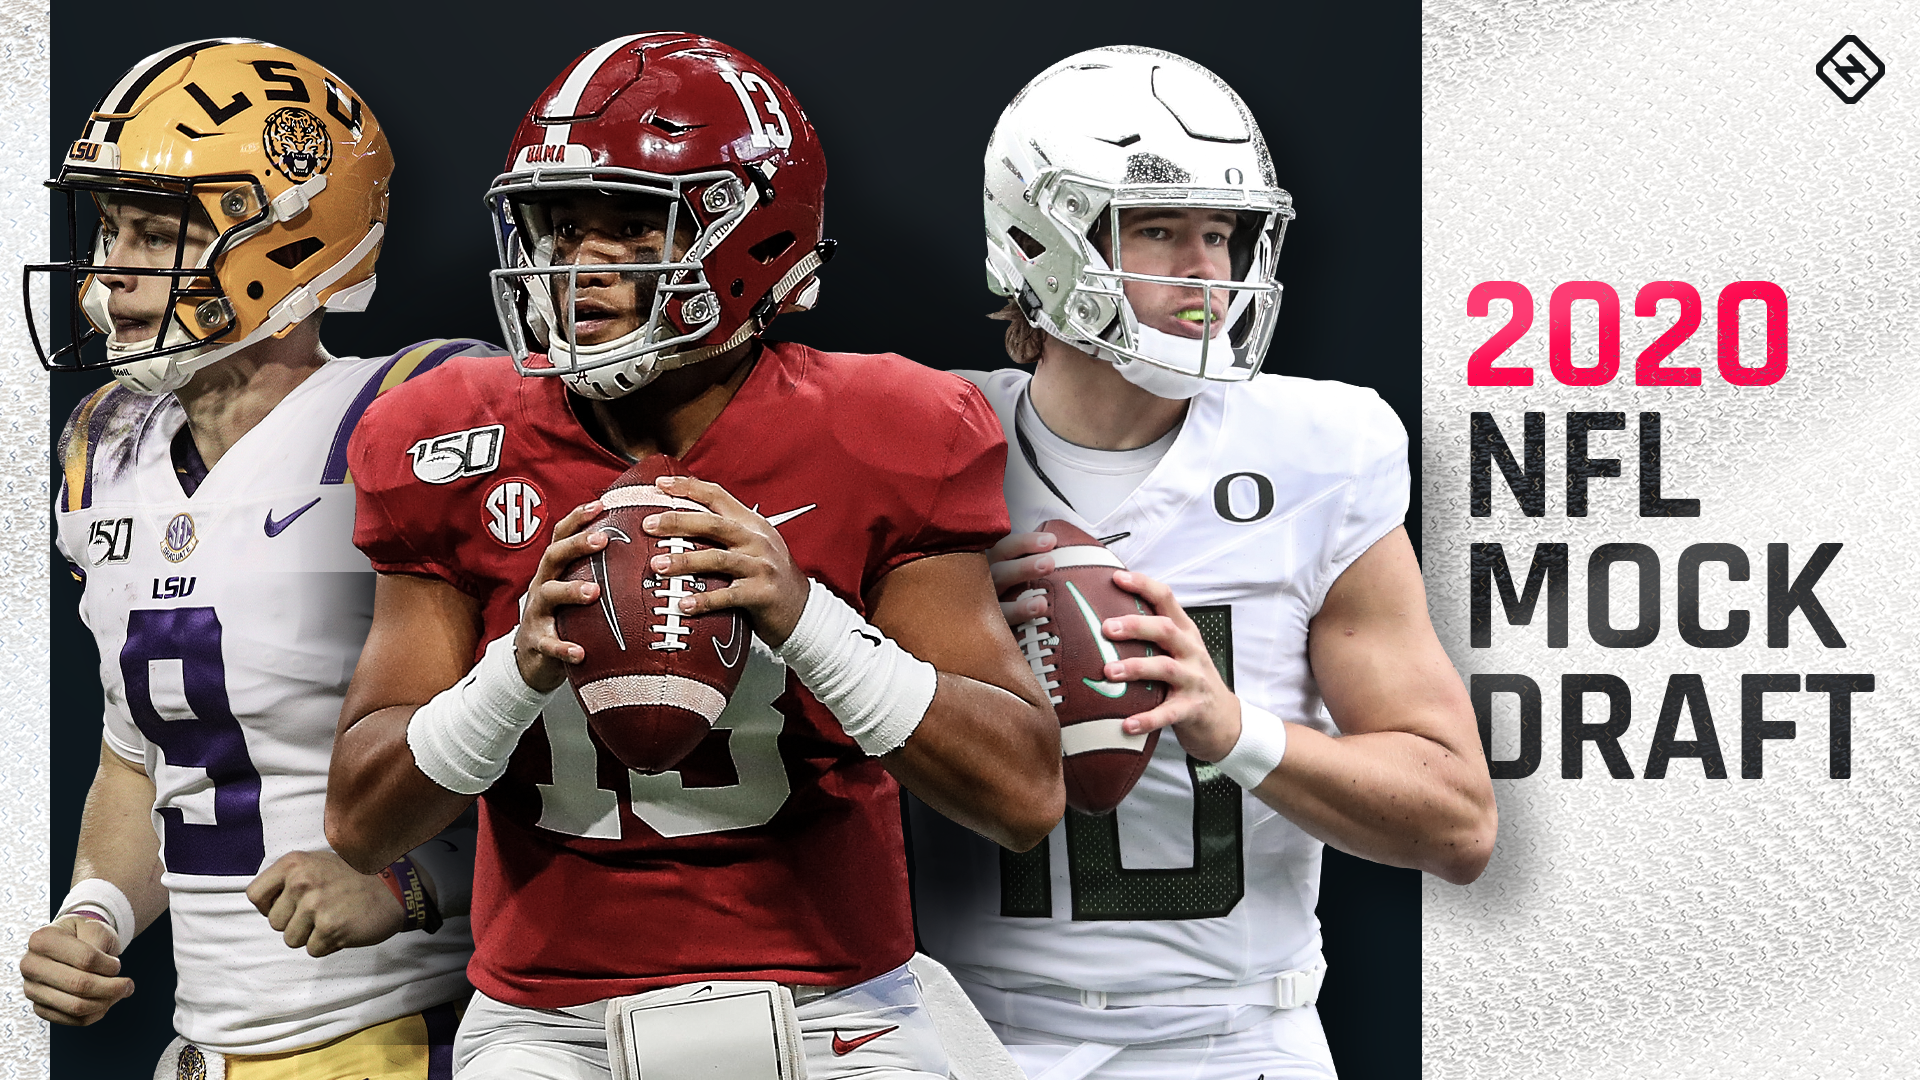 Nfl Mock Draft 2020 49ers Packers Bolster Defenses Chiefs Titans Get Playmakers On Offense National Footbal In 2020 Nfl College Football Season National Football